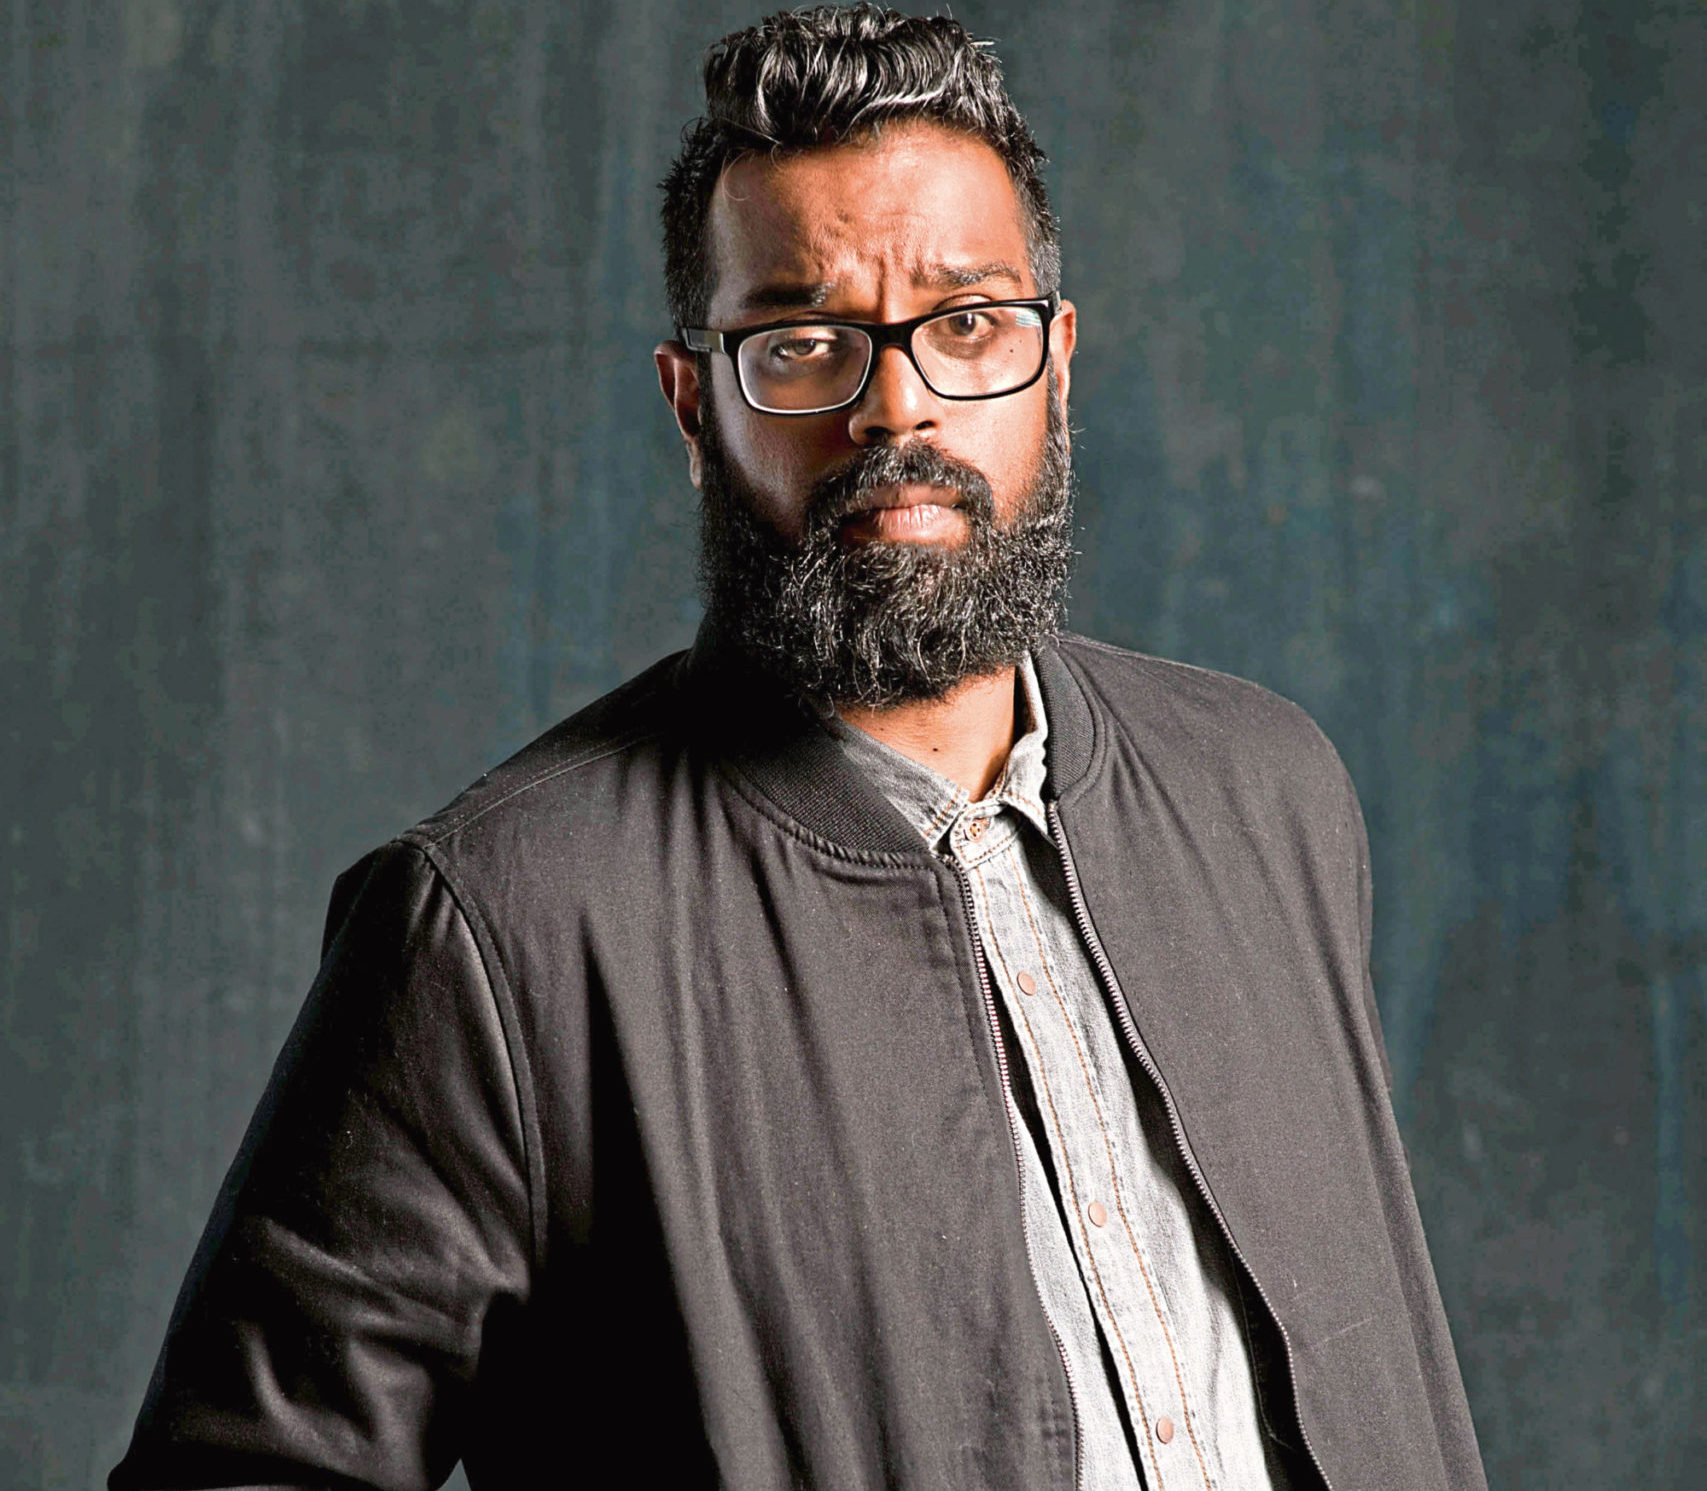 Romesh has turned his garage into a studio to film BBC Two comedy show The Ranganation